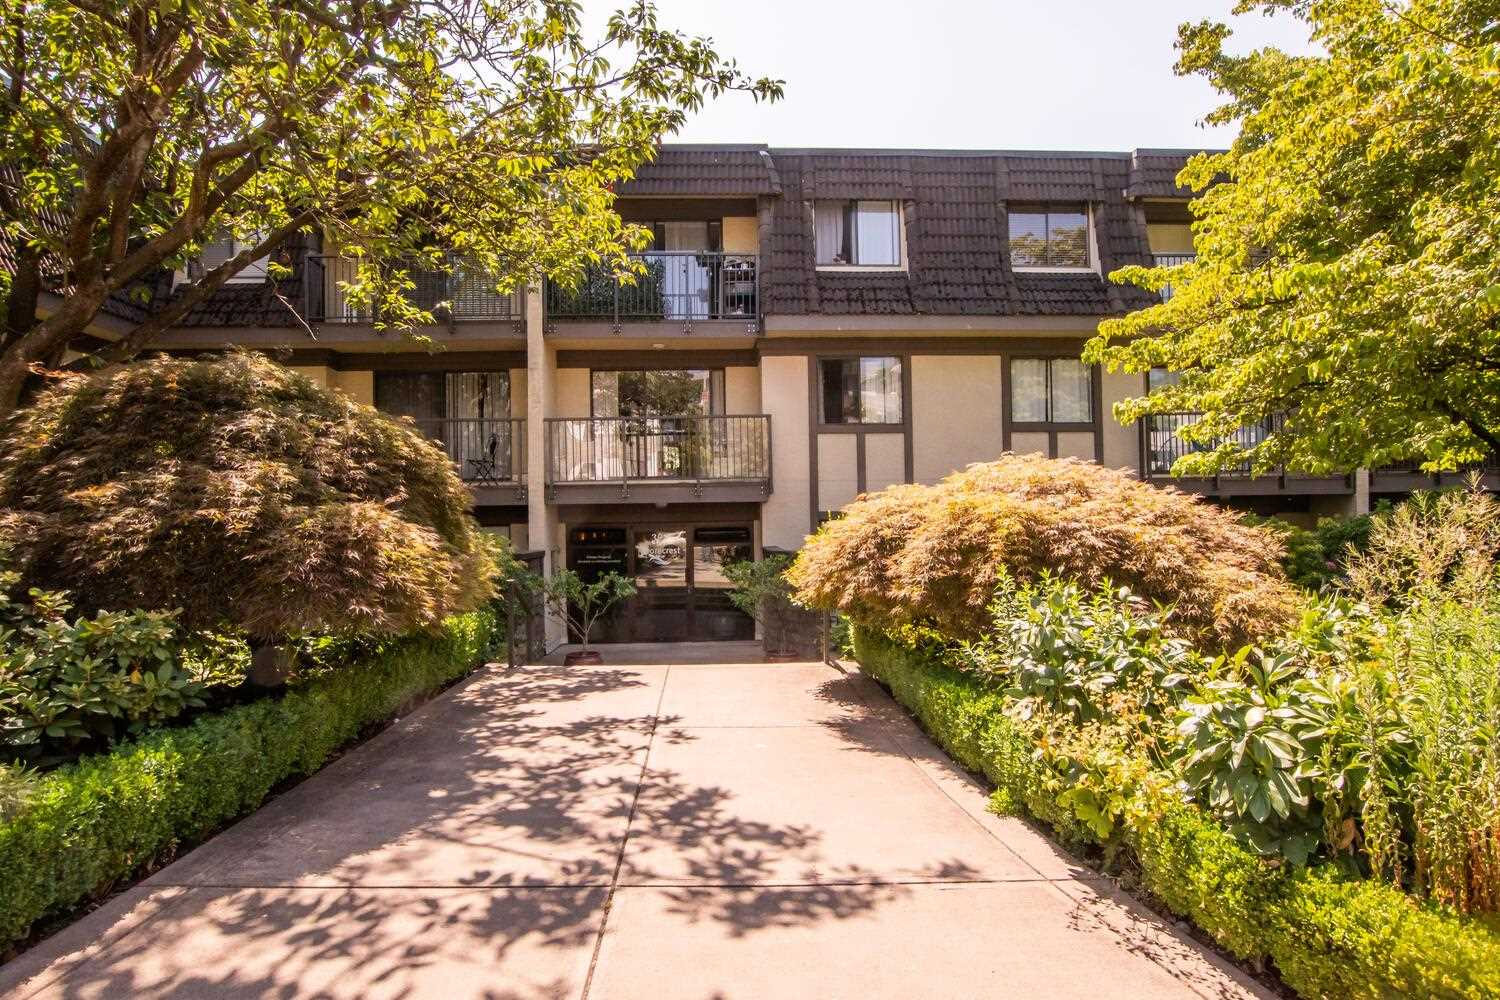 105 307 W 2ND STREET - Lower Lonsdale Apartment/Condo for sale, 1 Bedroom (R2605730)